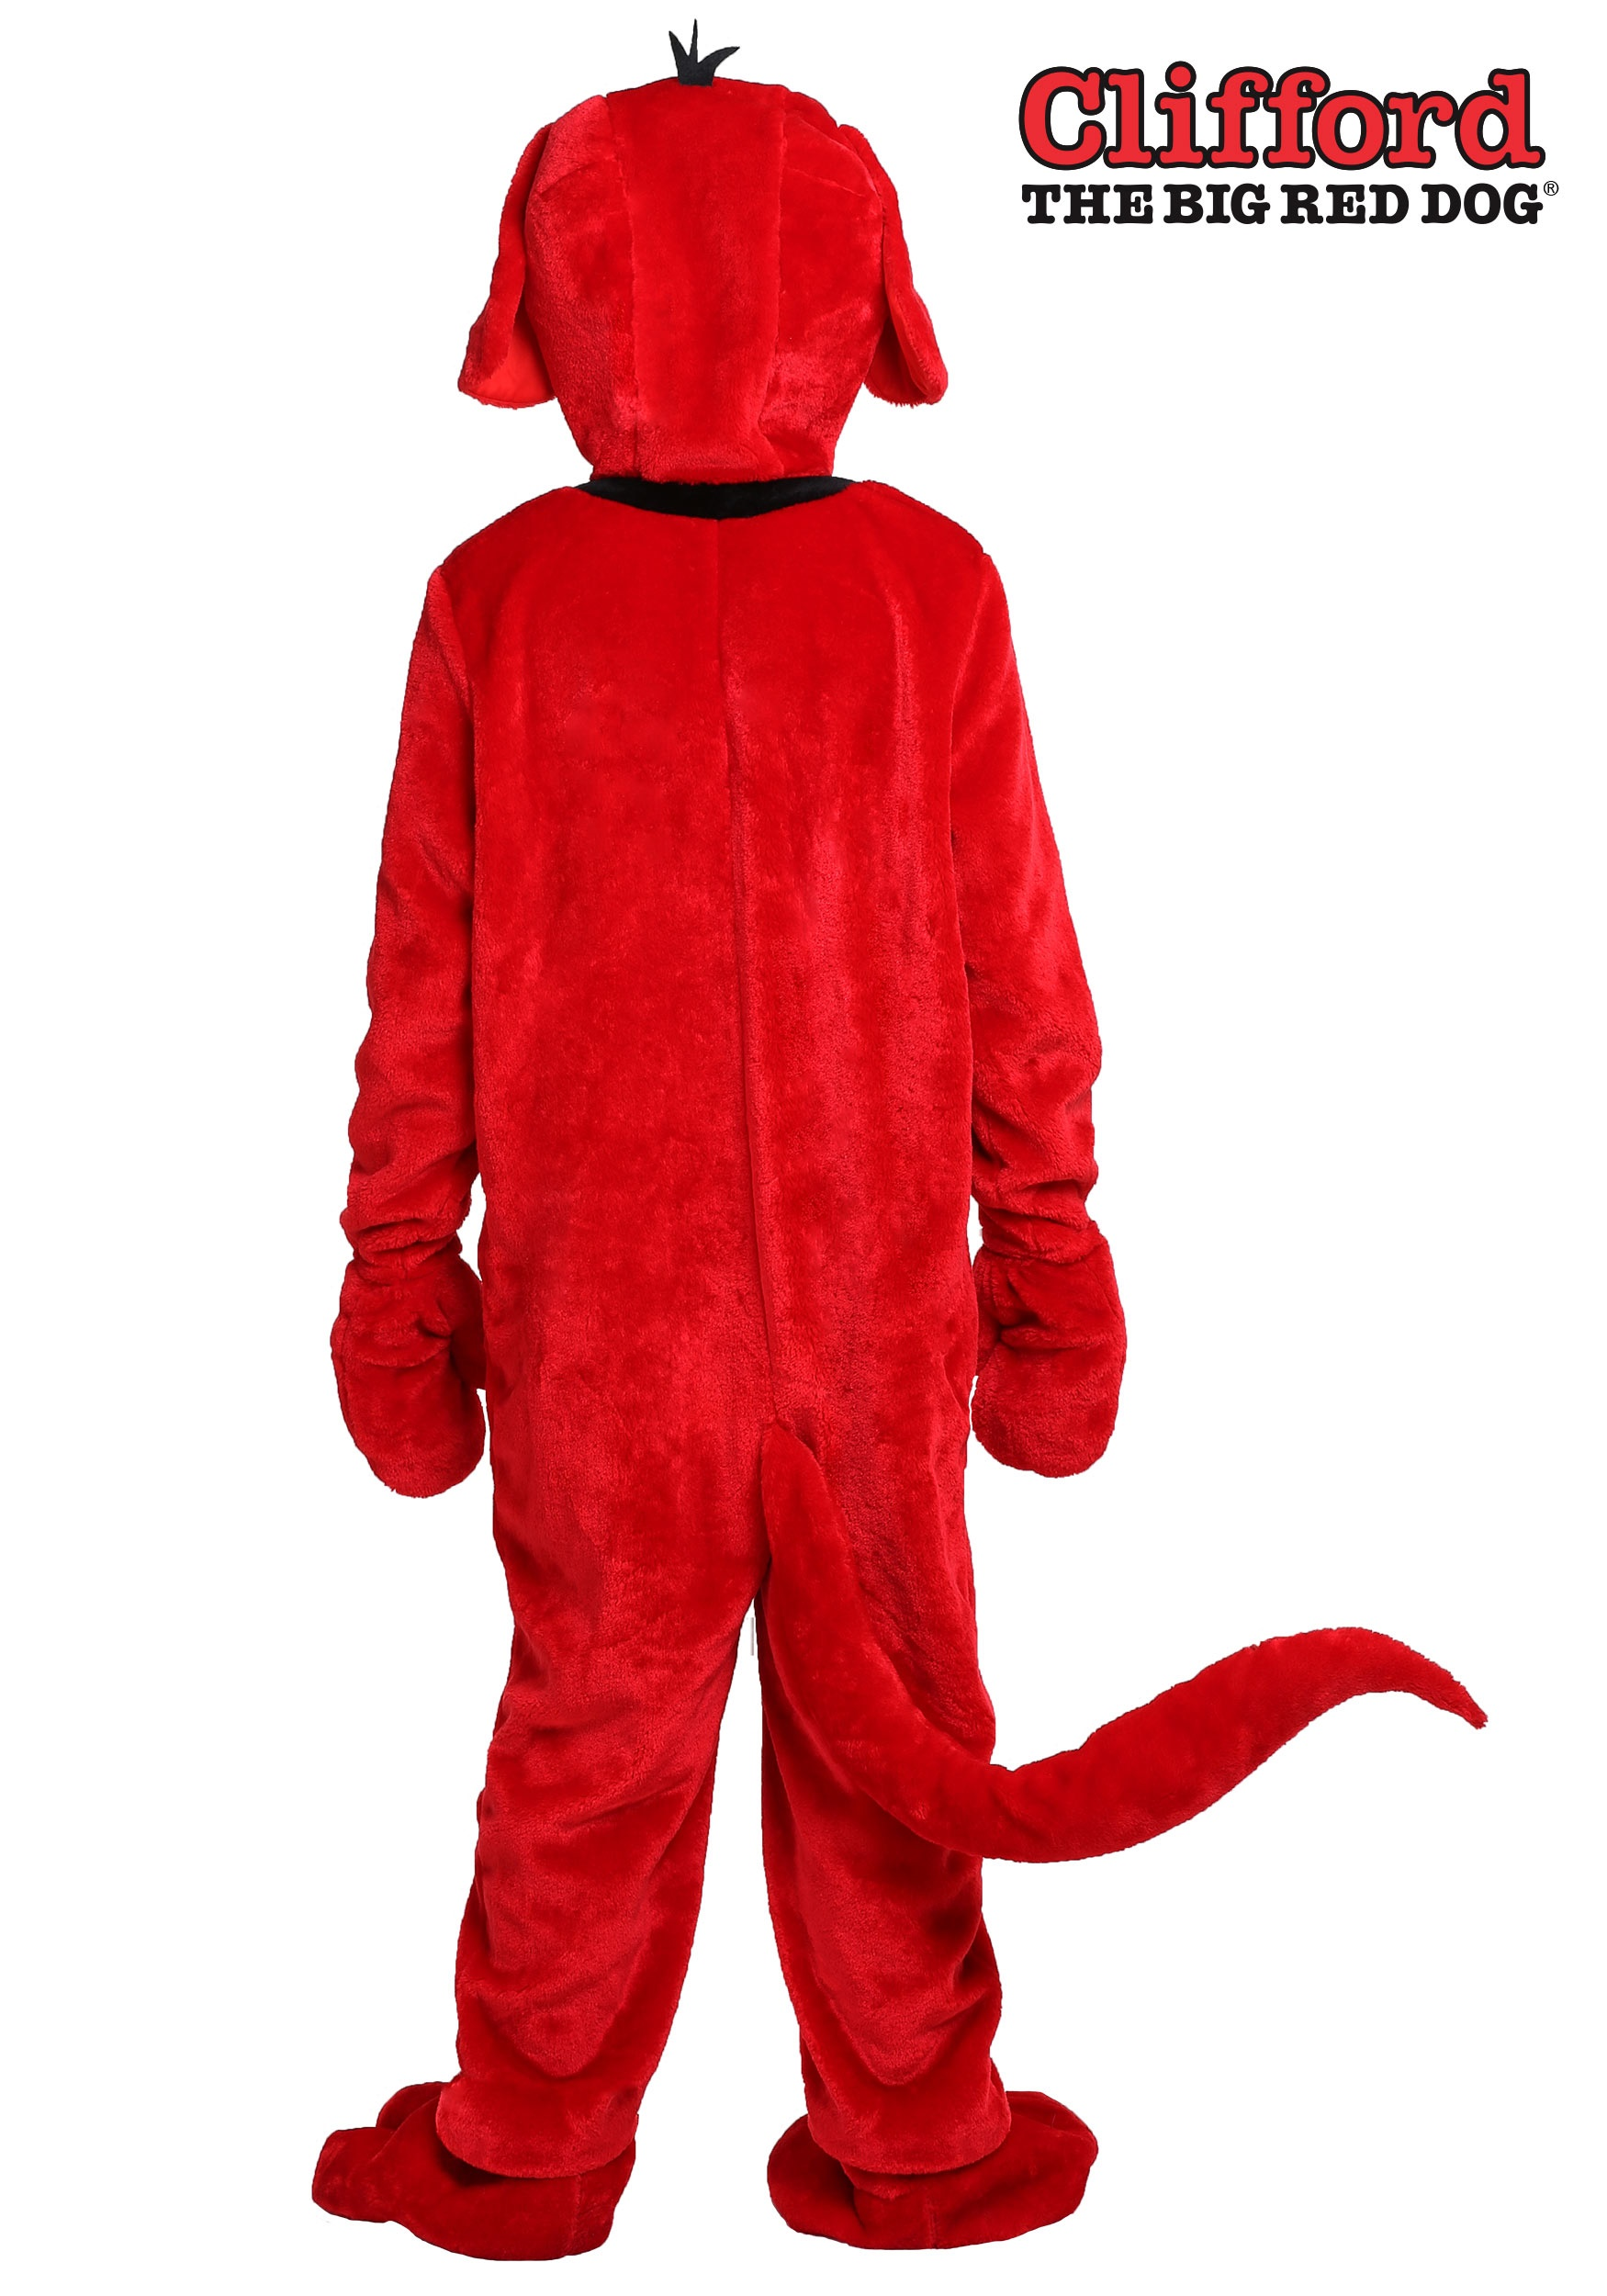 Clifford The Big Red Dog Plus Size Costume For Adults 2X 3X-9399